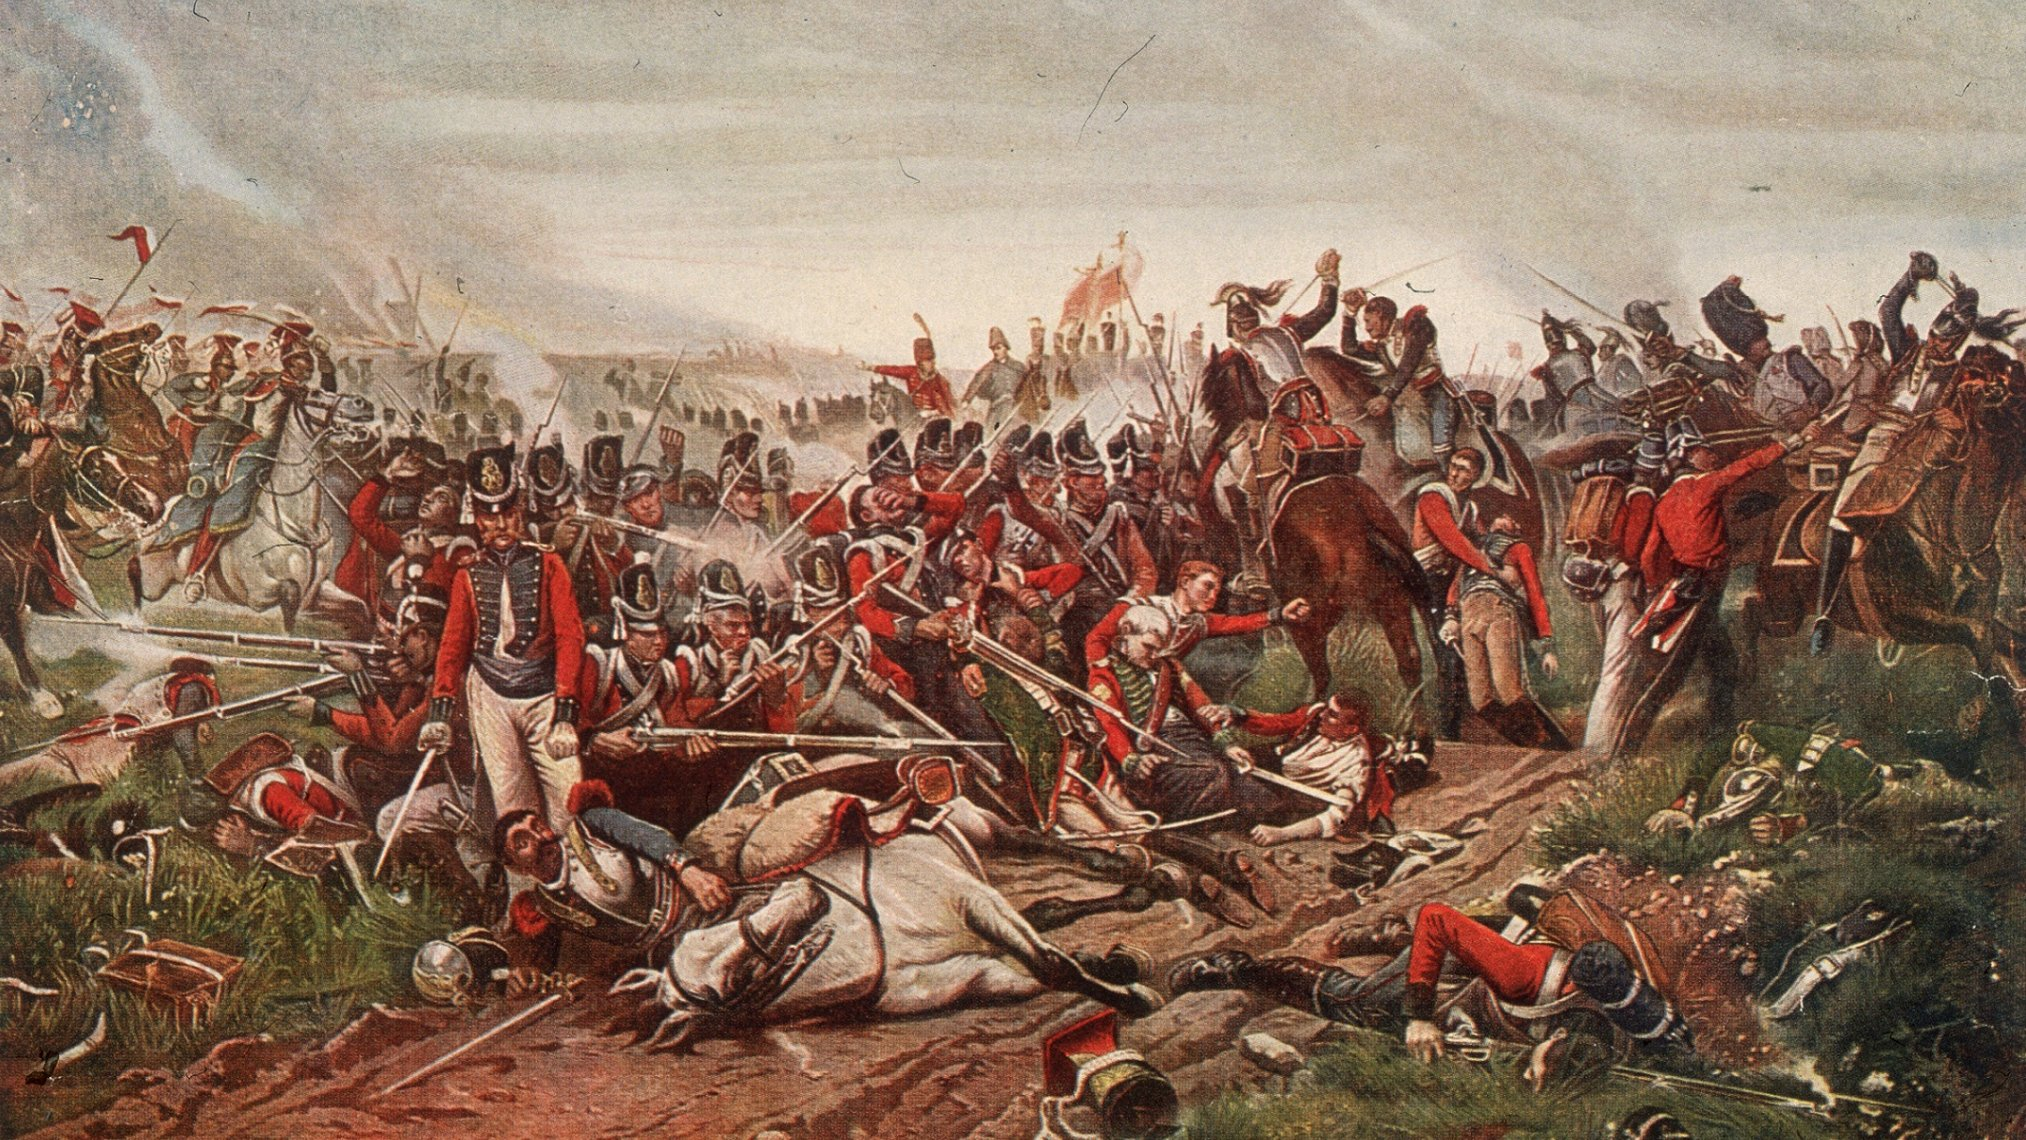 Glasgow to host table-top Waterloo re-enactment